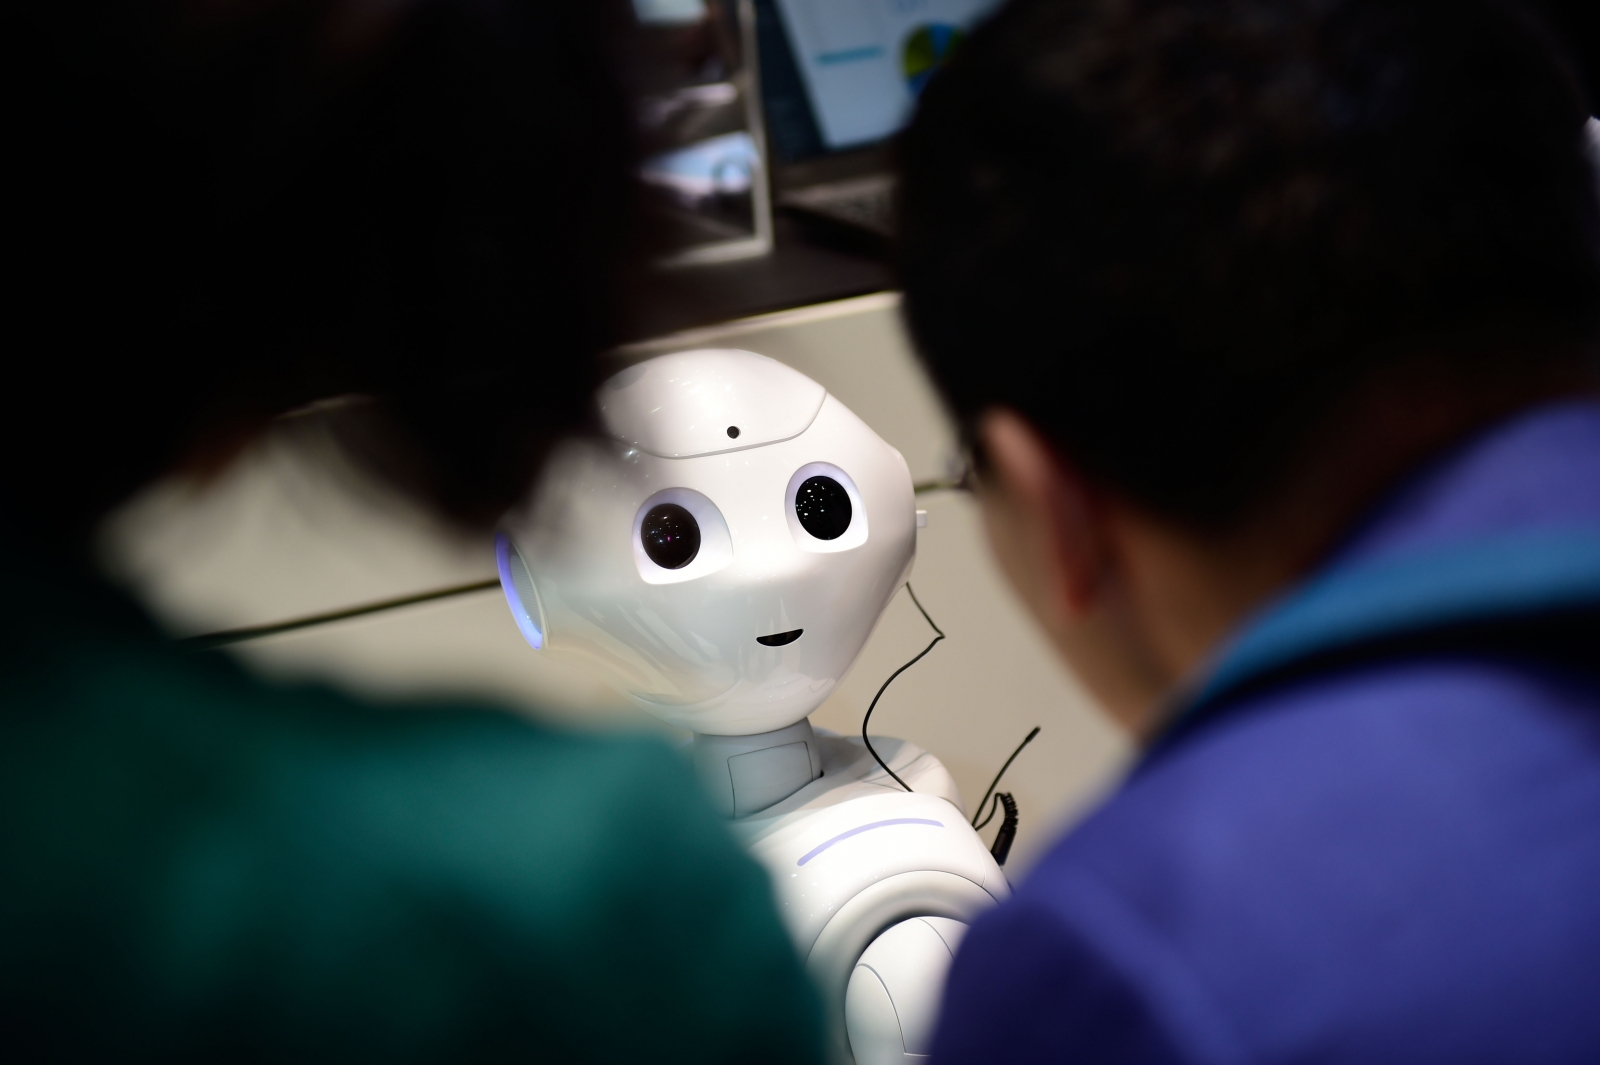 Robots could soon be spying on you thanks to scientists working on bot surveillance